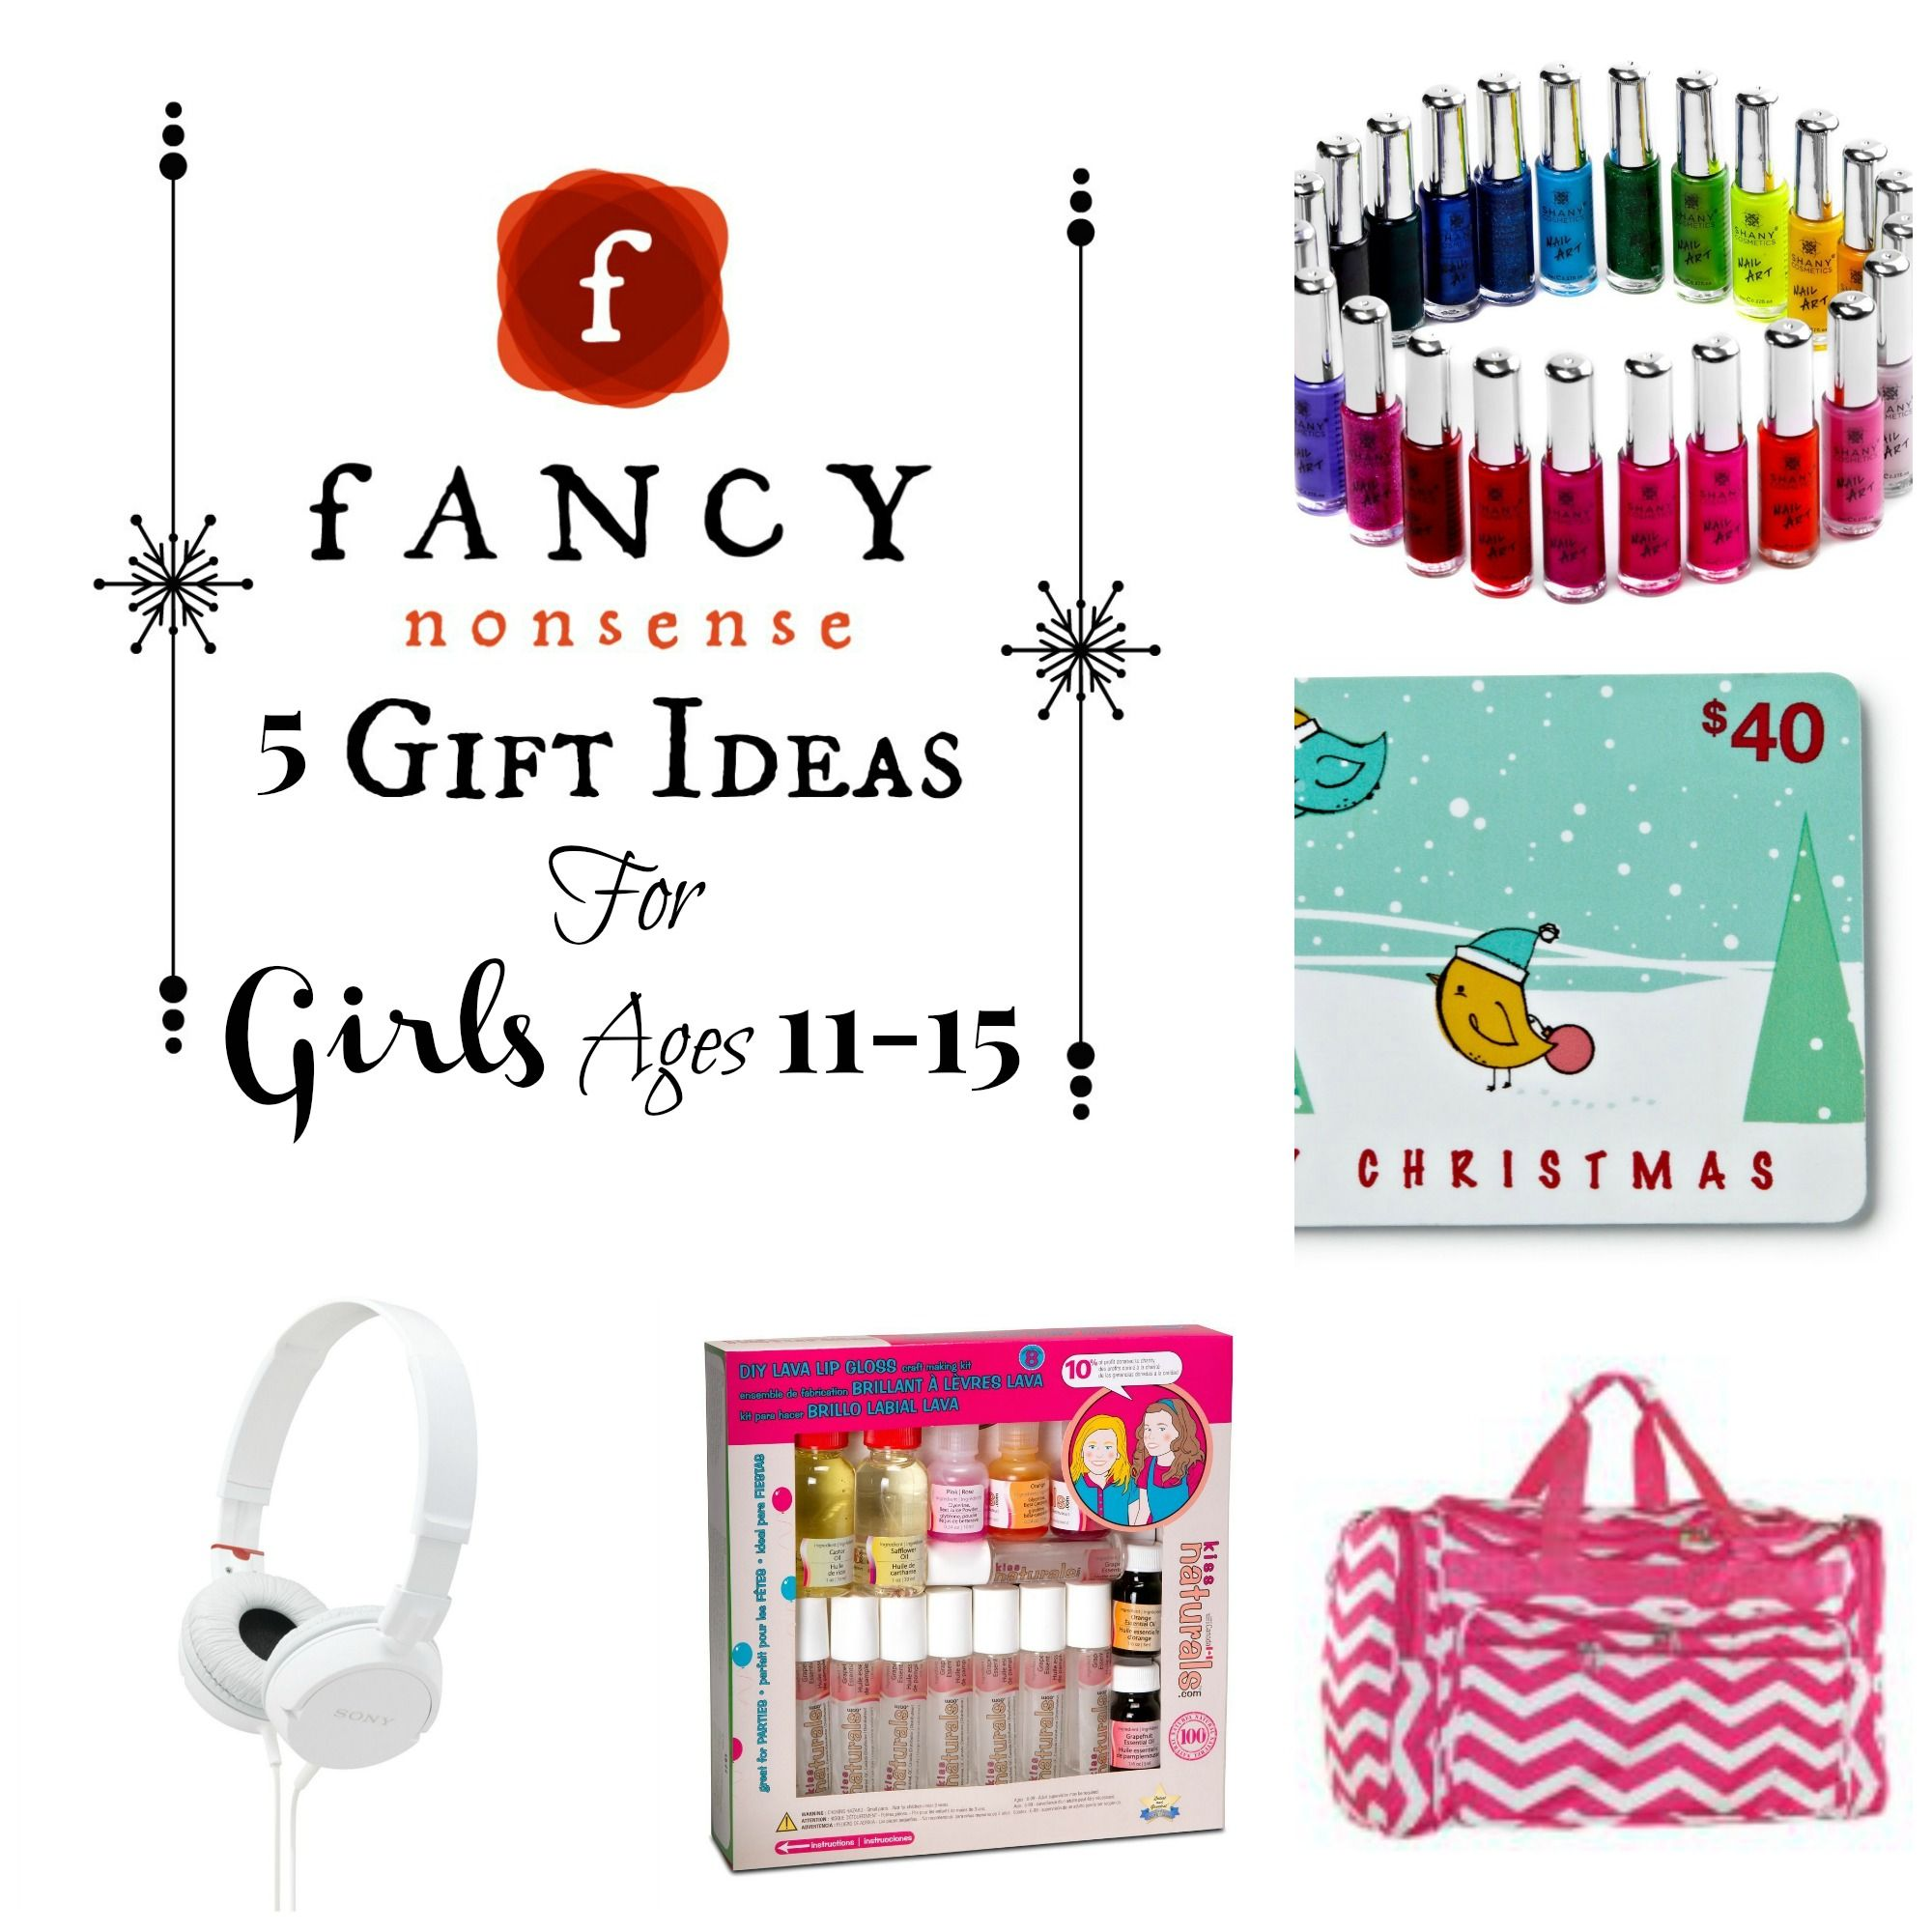 5 Gift Ideas For Girls Ages 11 15 from Fancy Nonsense